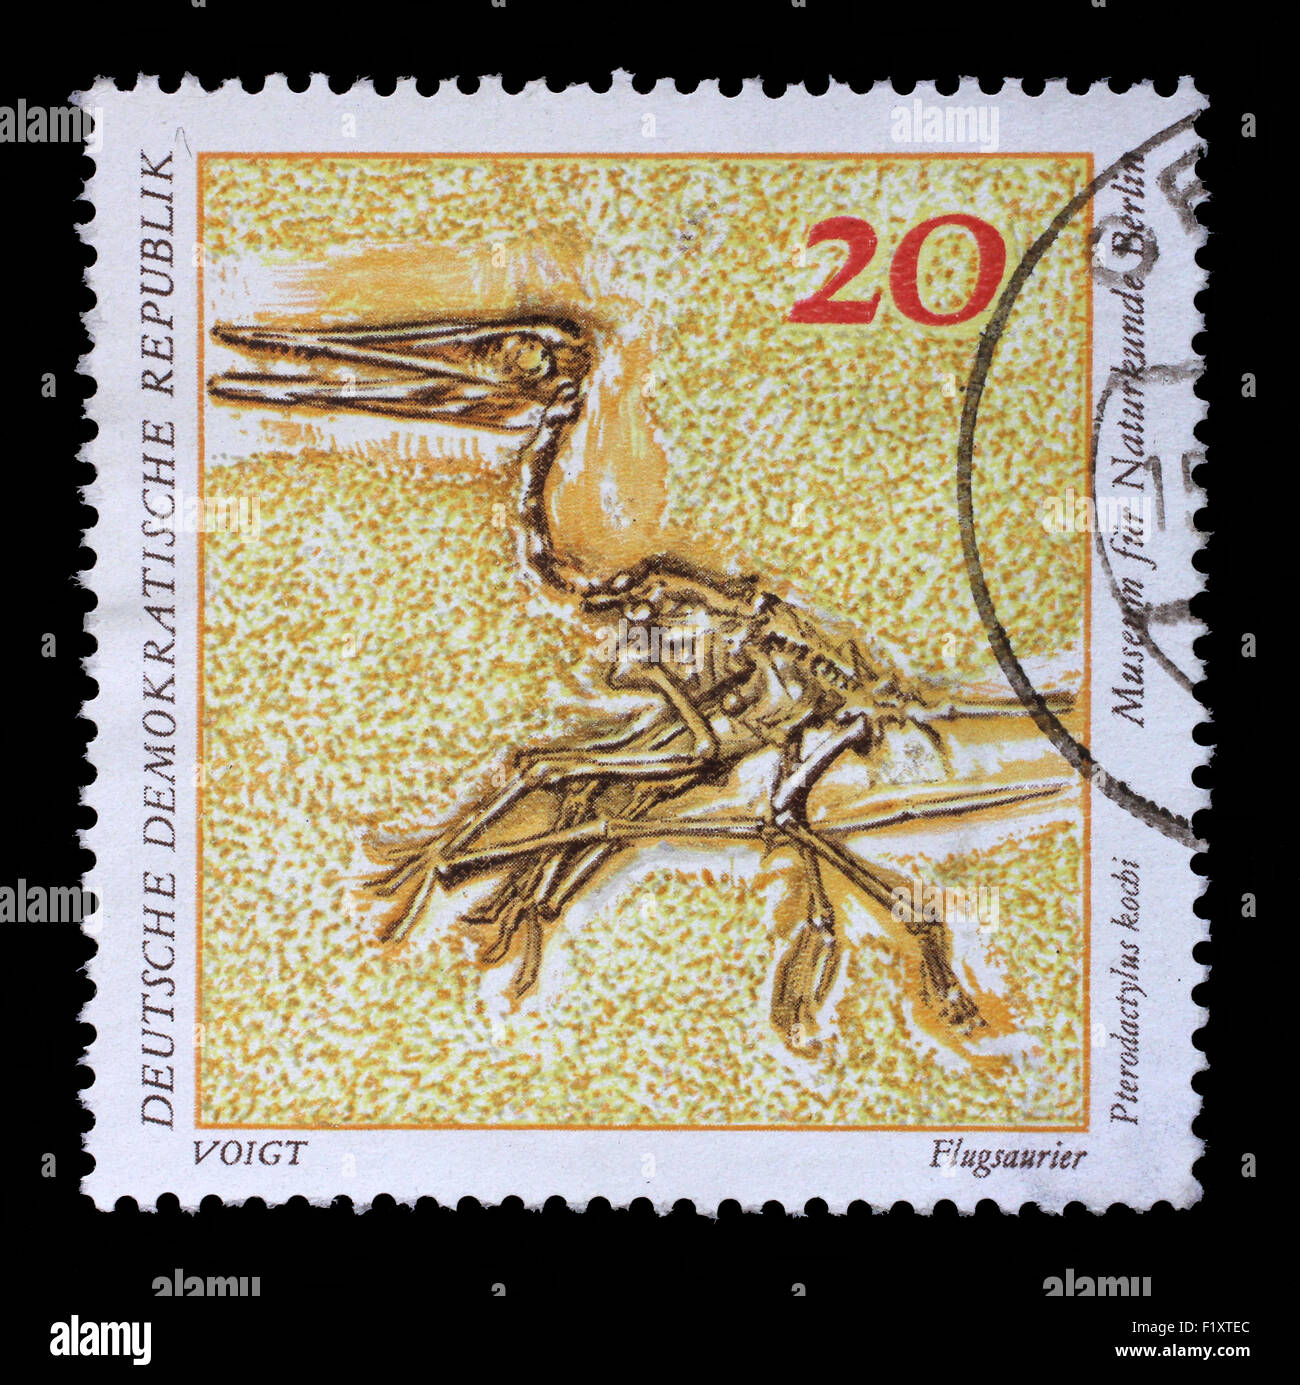 GDR-CIRCA 1973: A stamp printed in GDR shows Pterodactylus kochi, Natural History Museum Pieces, circa 1973. - Stock Image